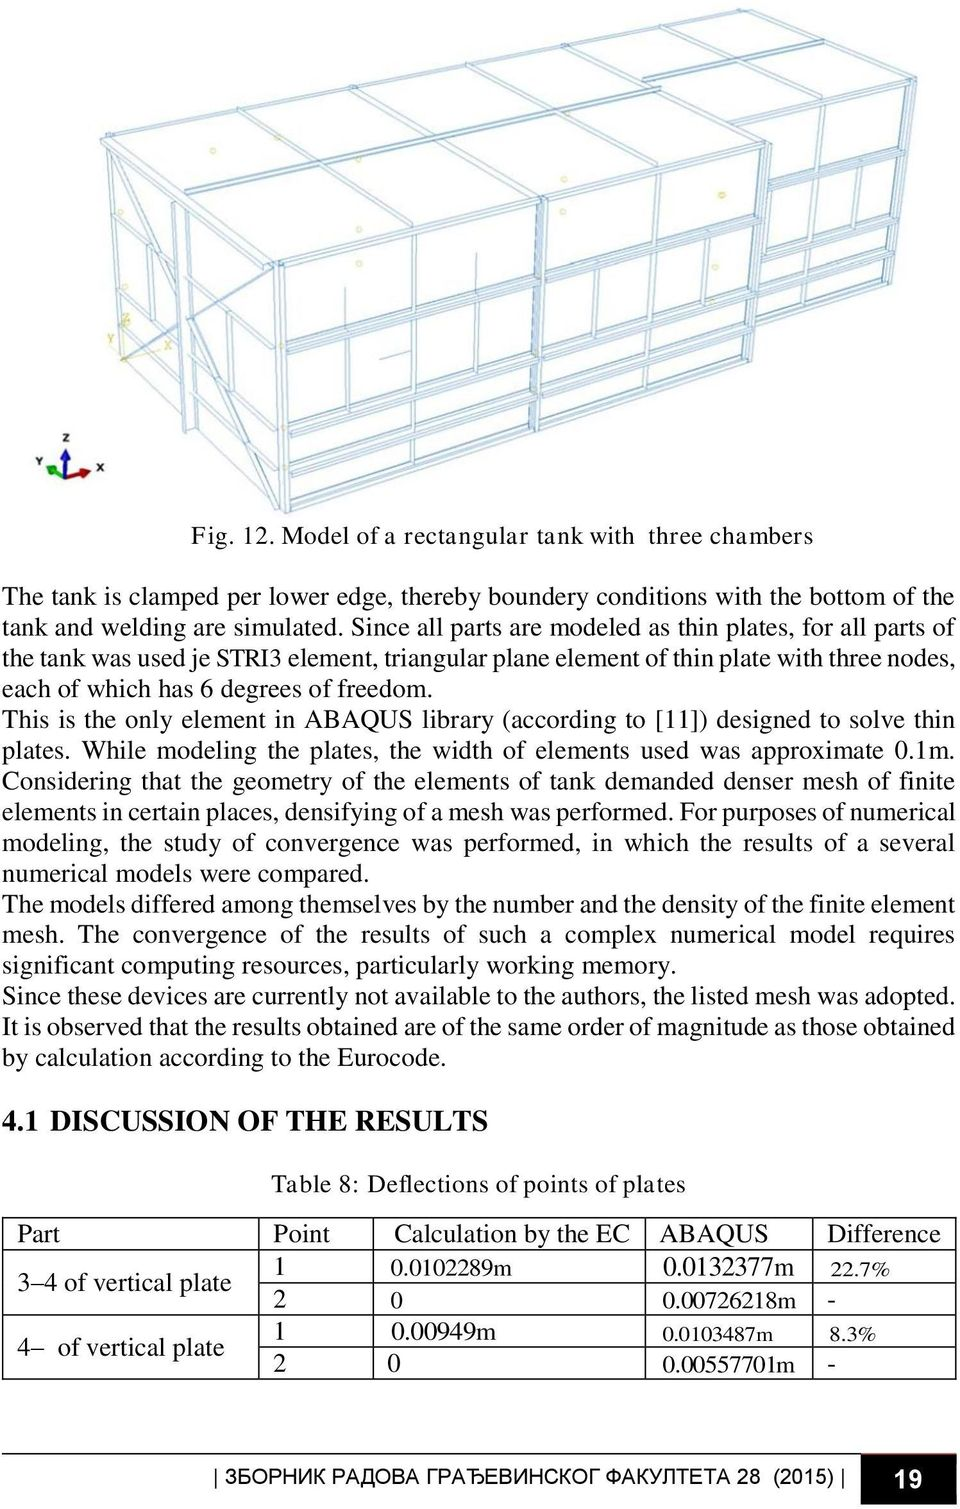 DIMENSIONING STEEL STRUCTURE OF RECTANGULAR TANK ACCORDING